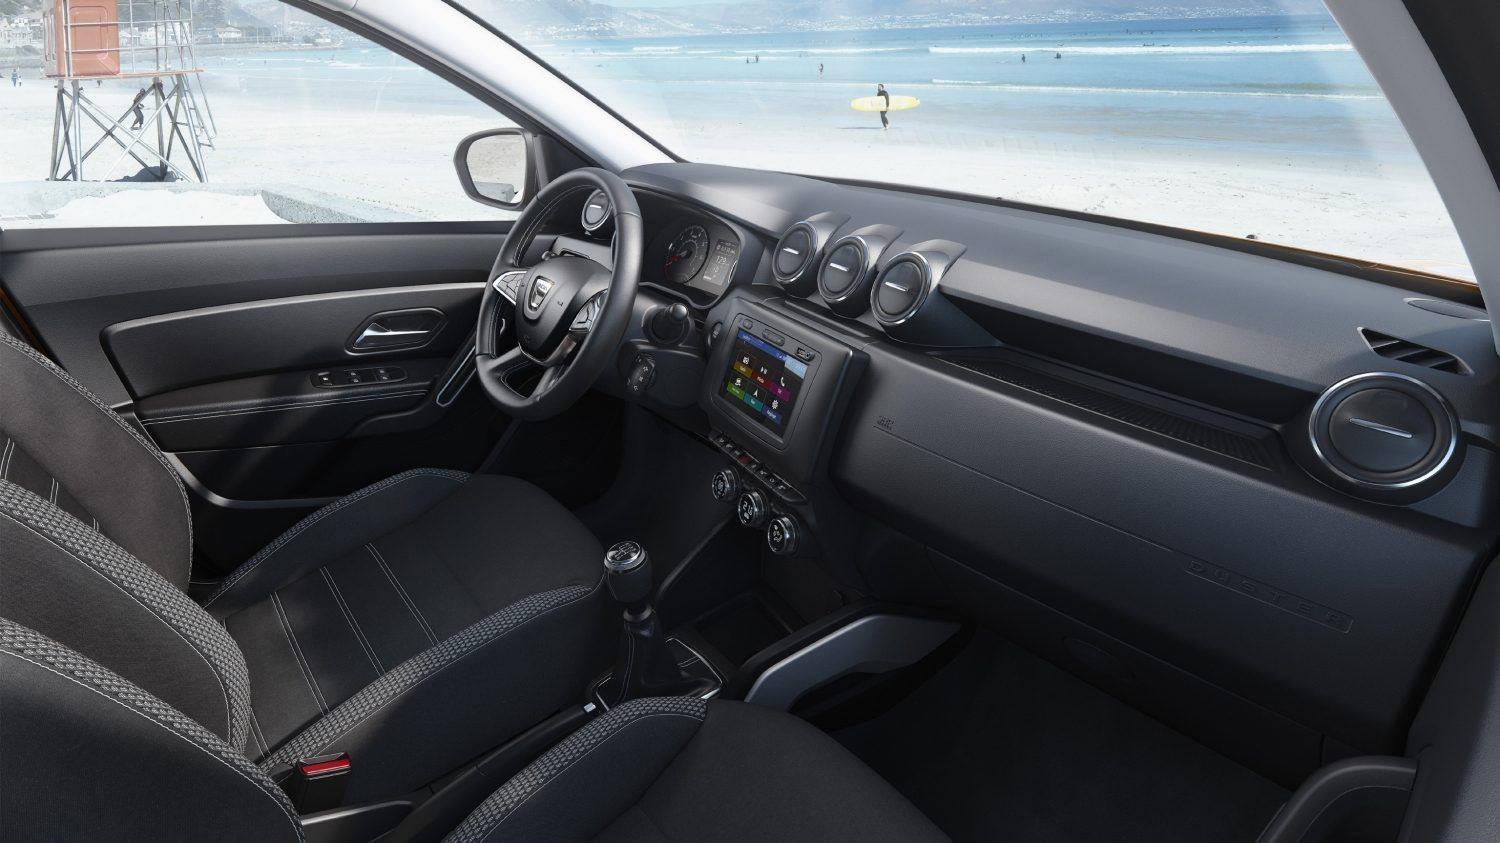 dacia-duster-reveal-006.jpg.ximg.l_full_m.smart